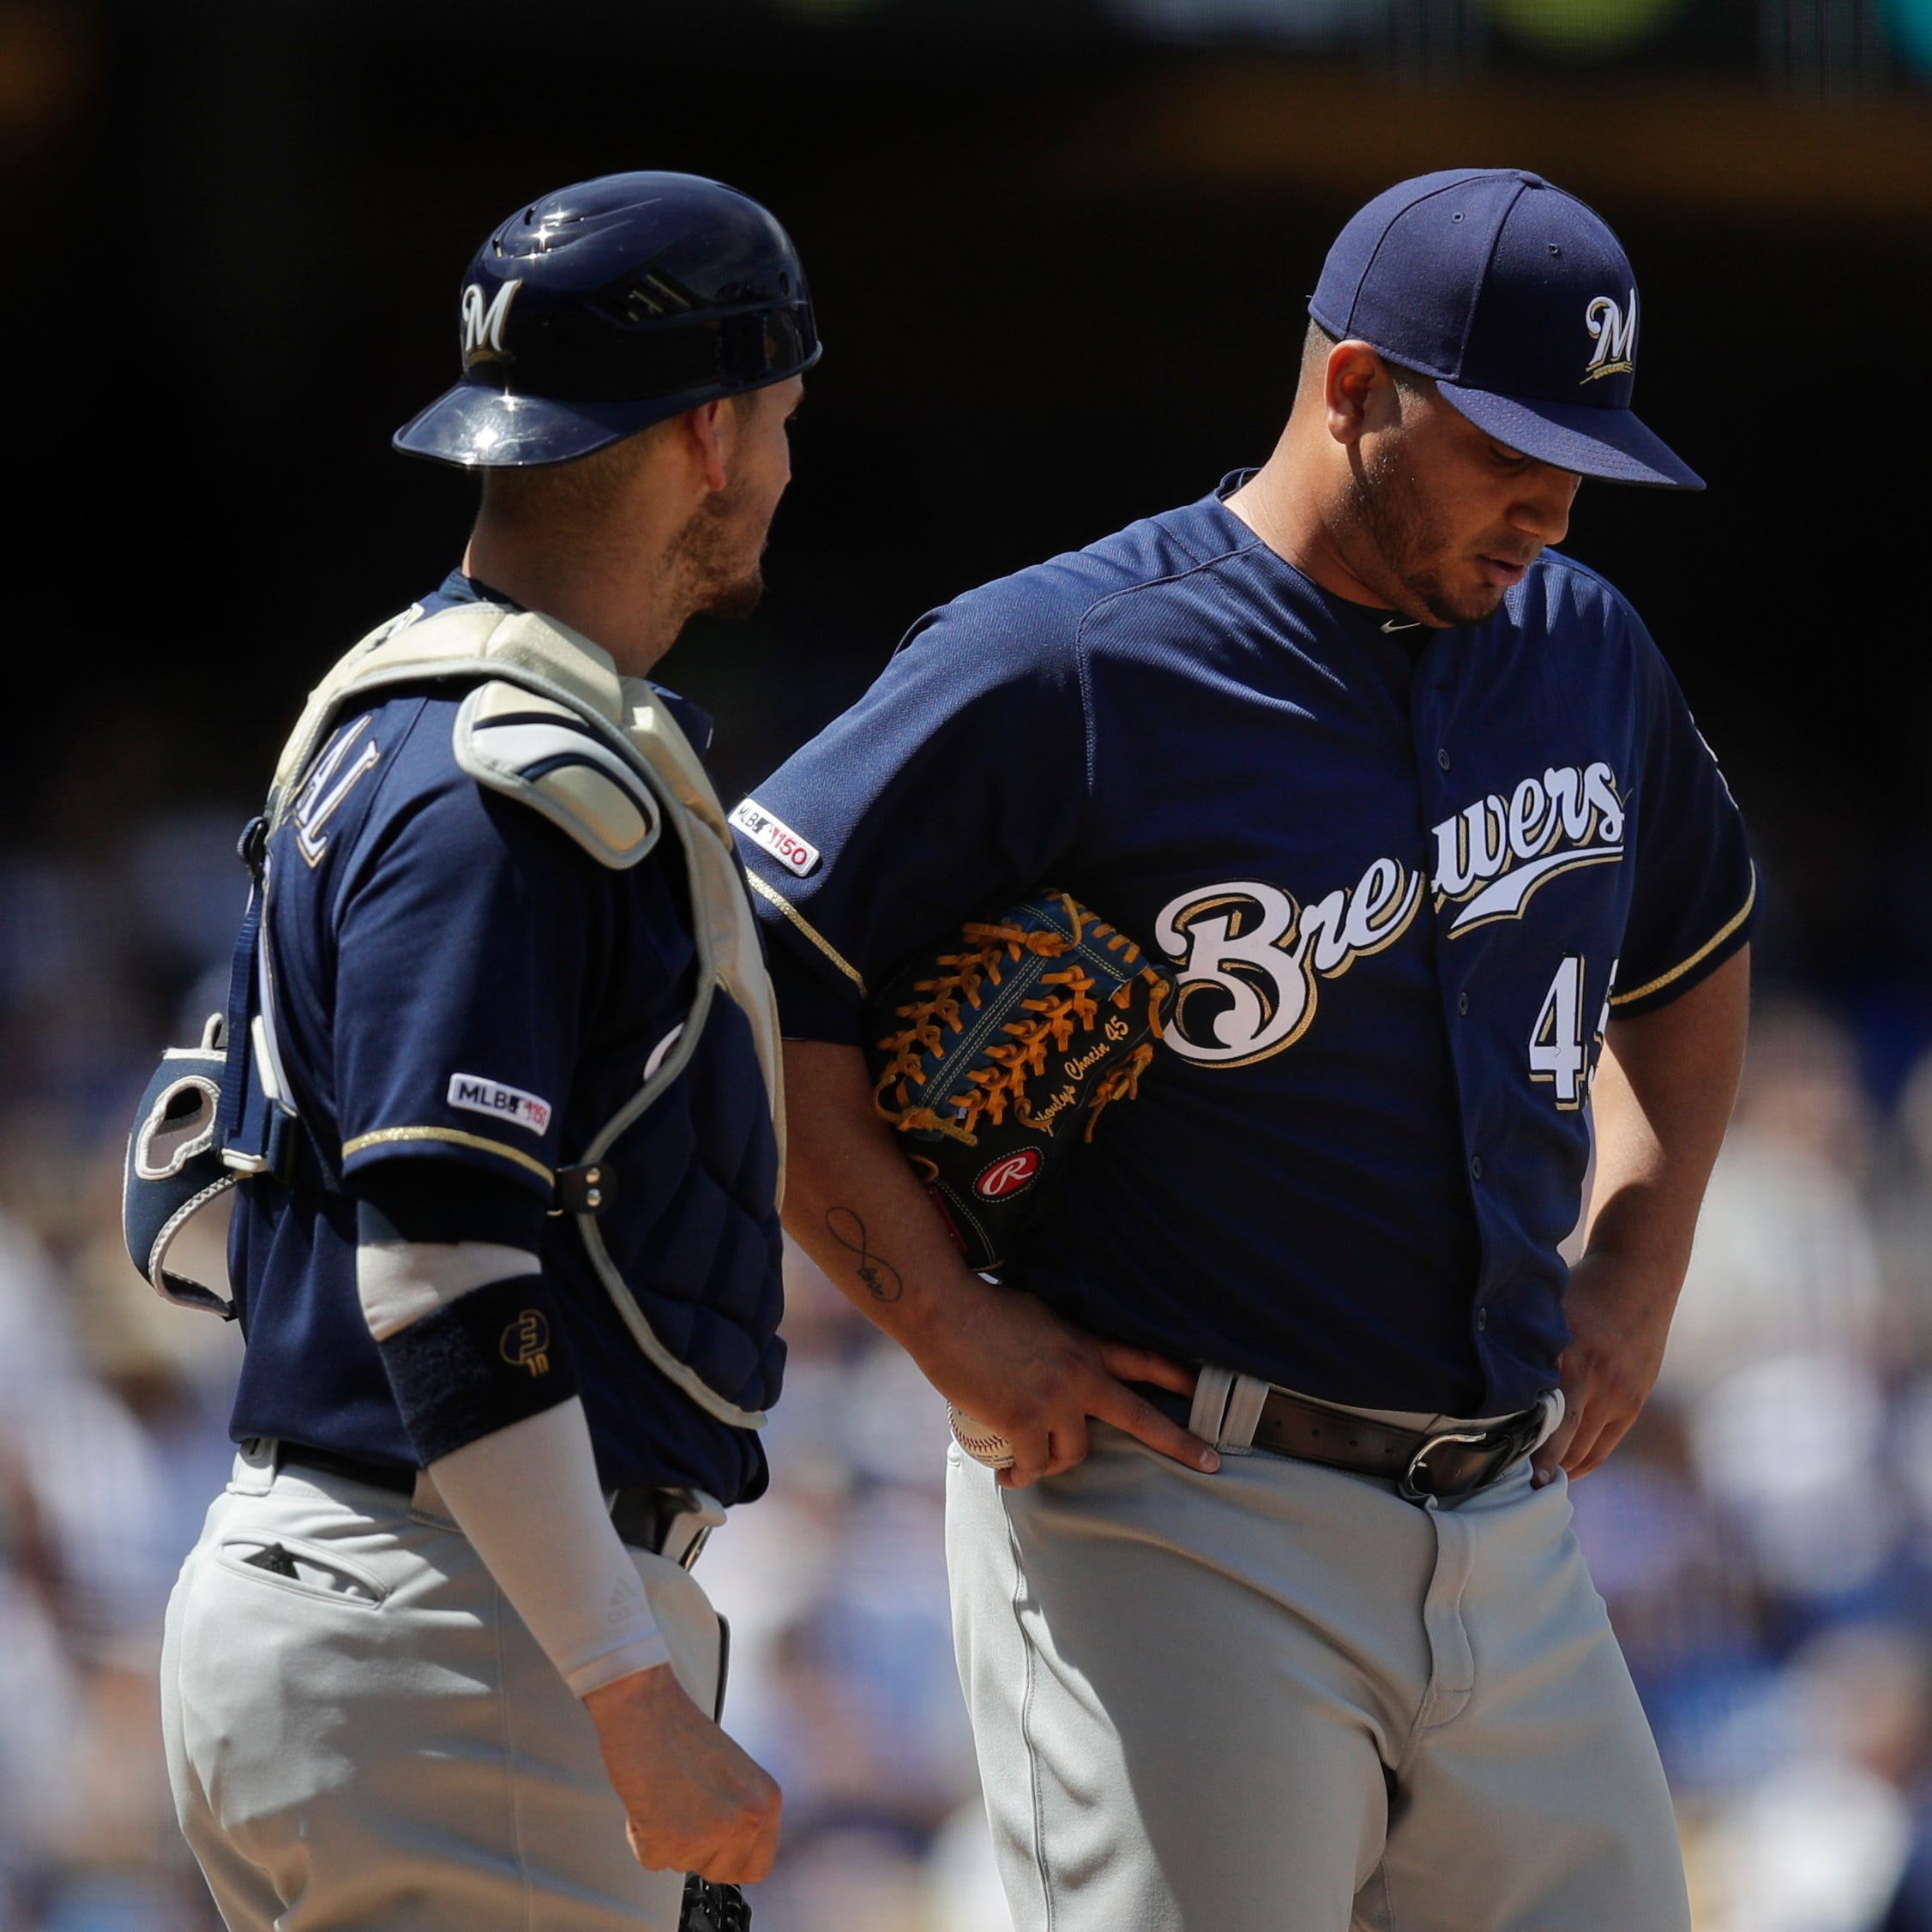 Haudricourt: With a struggling rotation, Brewers need Jhoulys Chacín to return to ace form